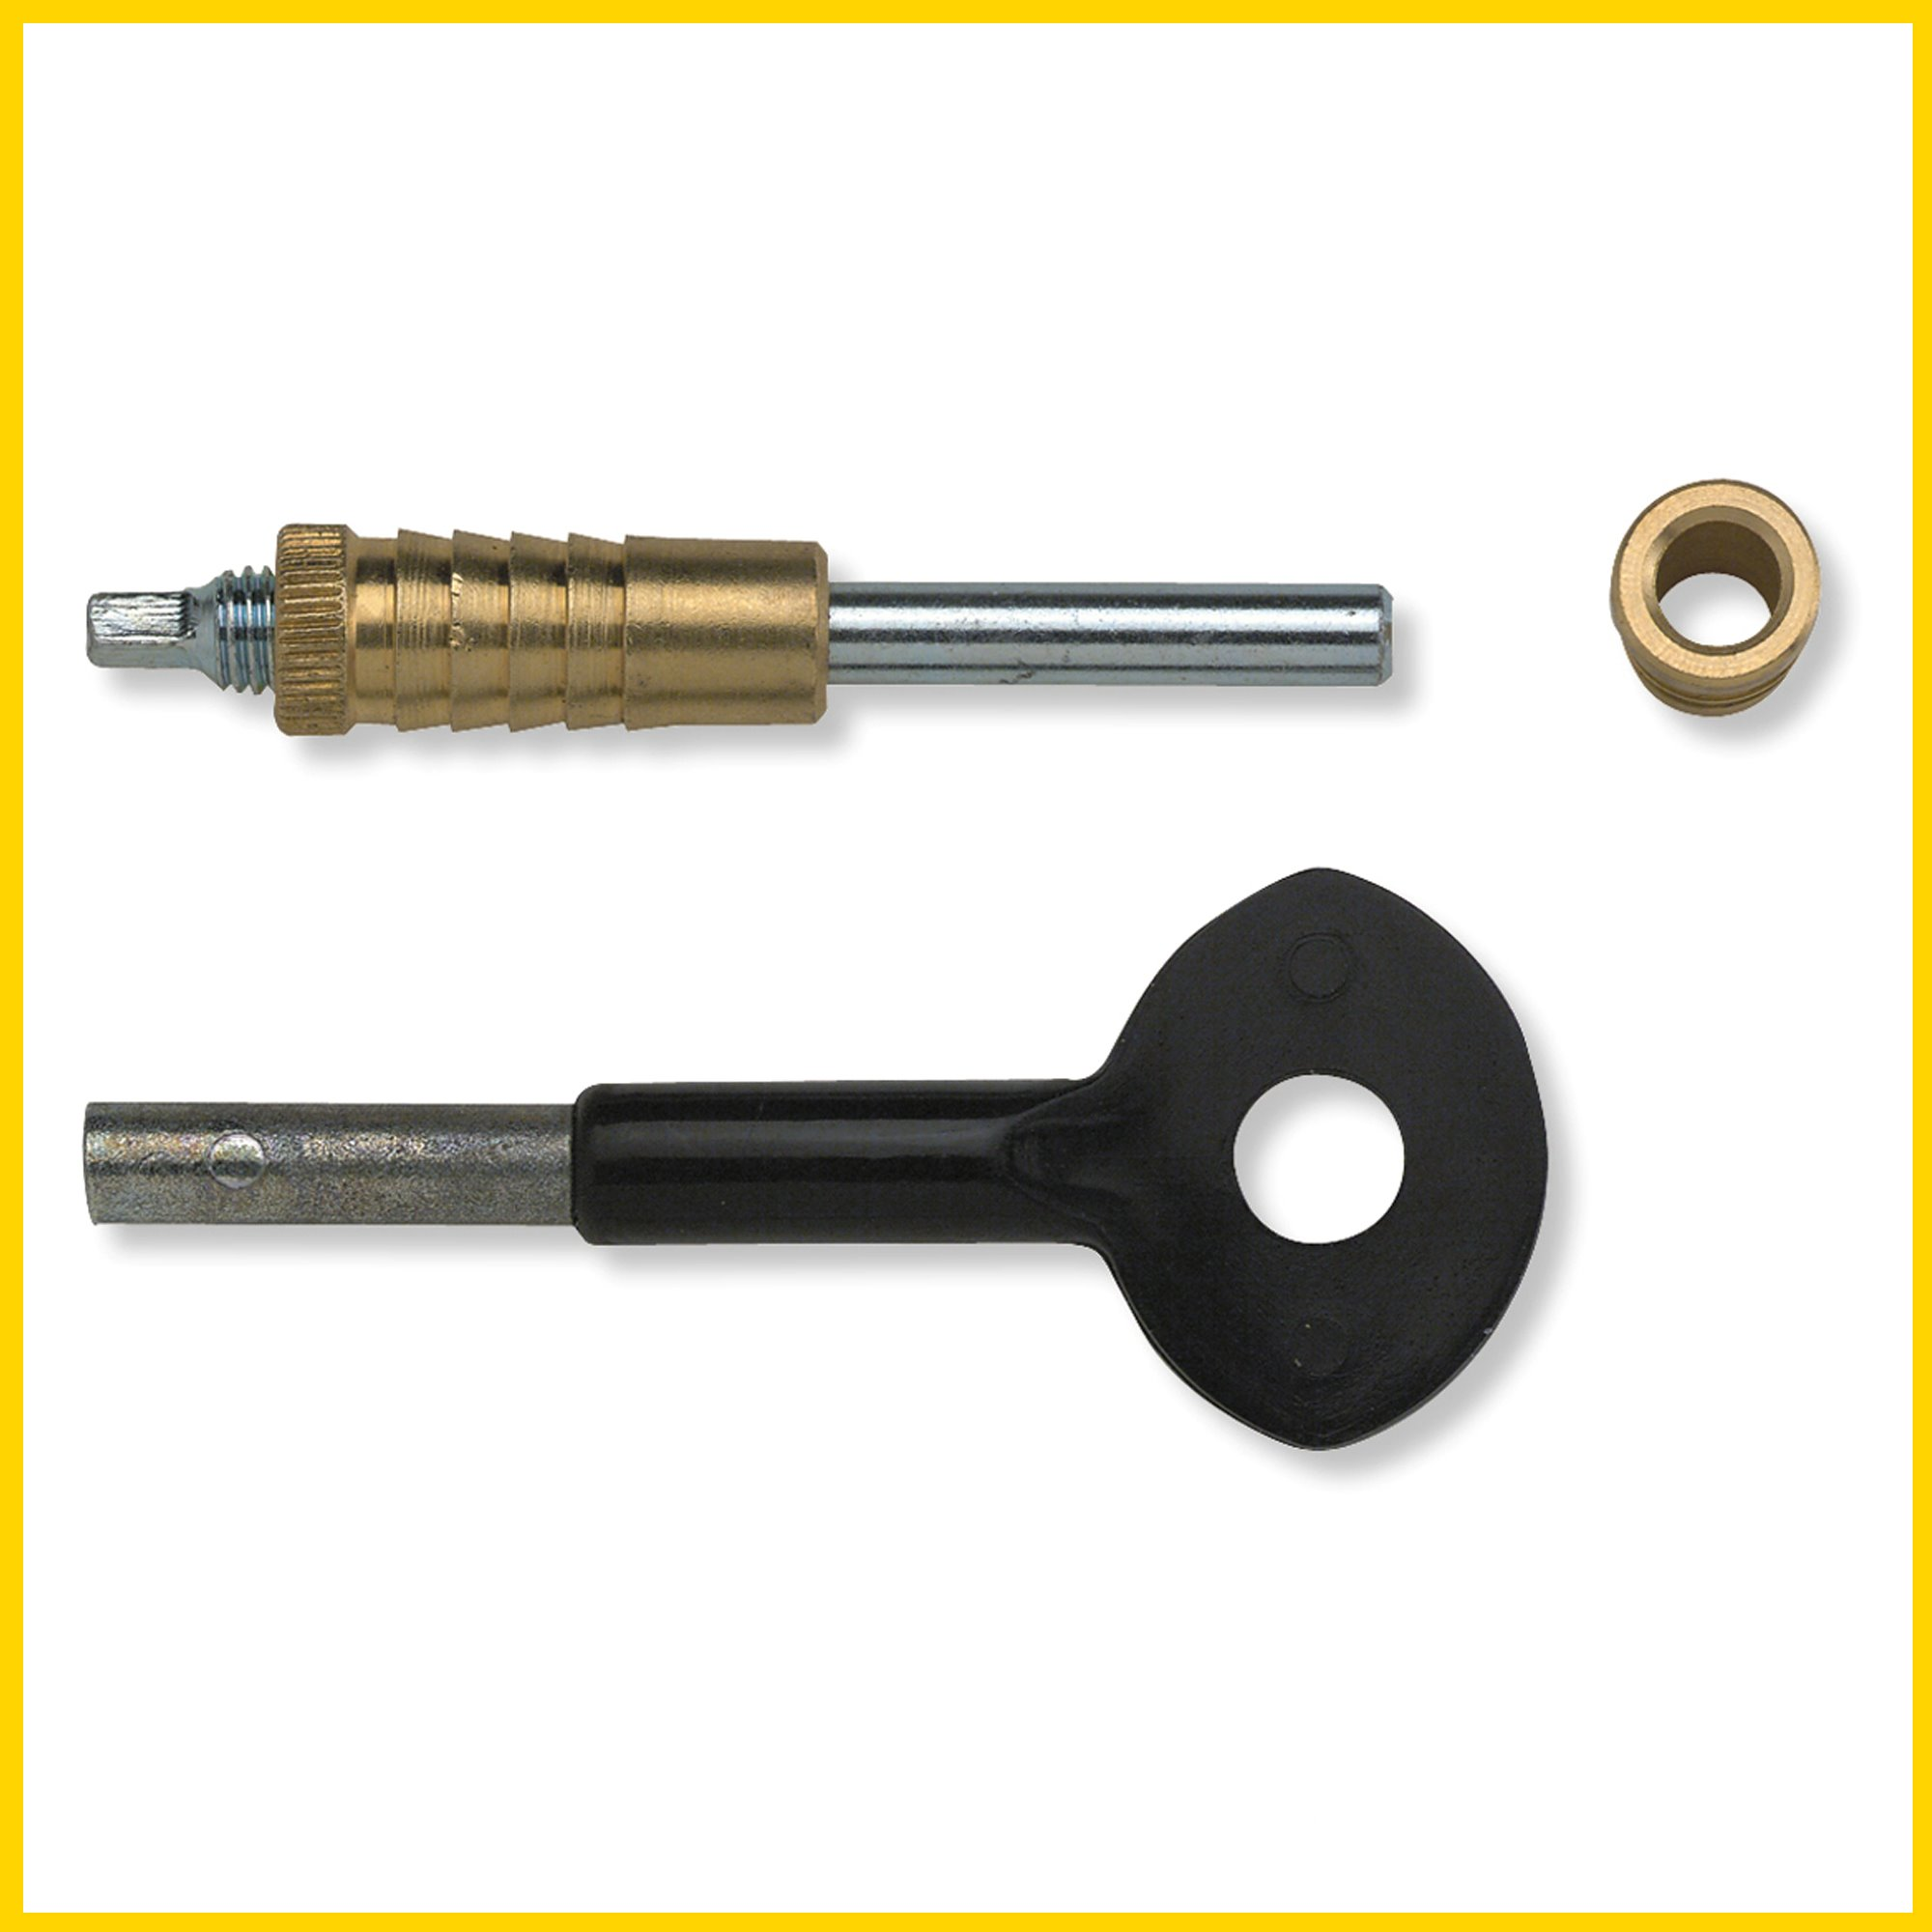 P119 - Sash Window Bolt